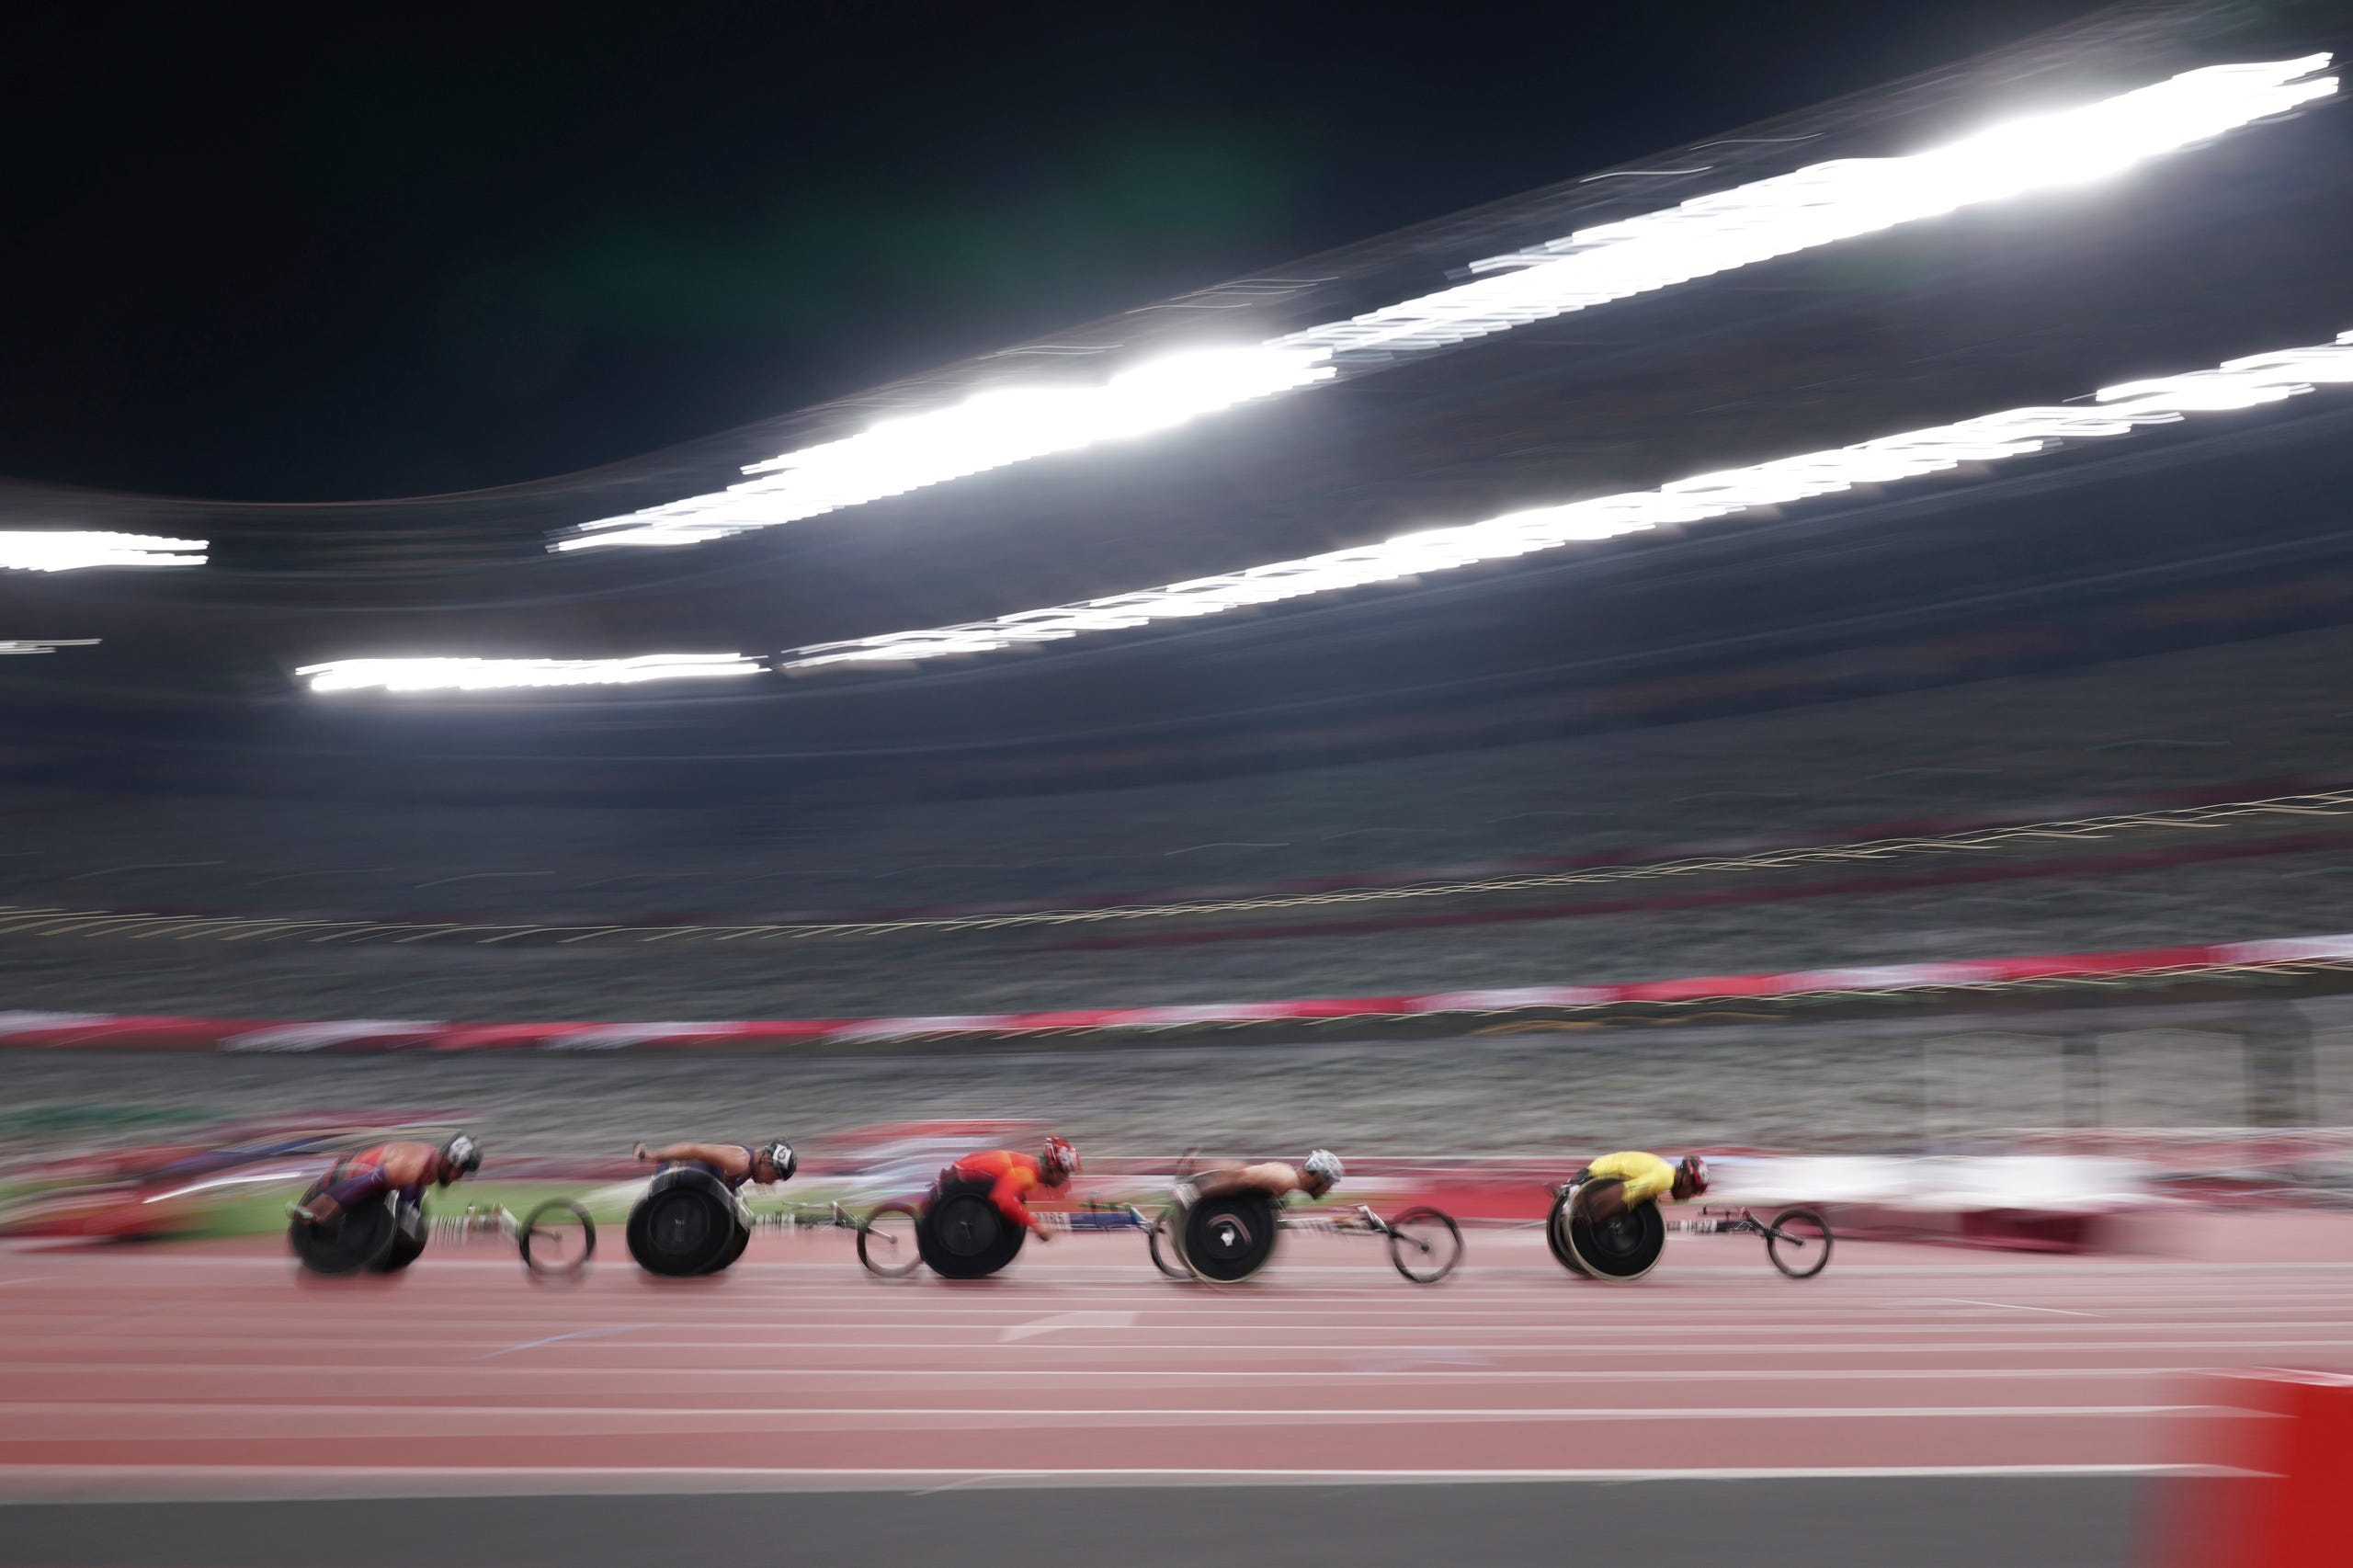 August 27, 2021: Athletes compete during men's T54 5000m heat at Tokyo 2020 Paralympic Games in Tokyo, Japan.